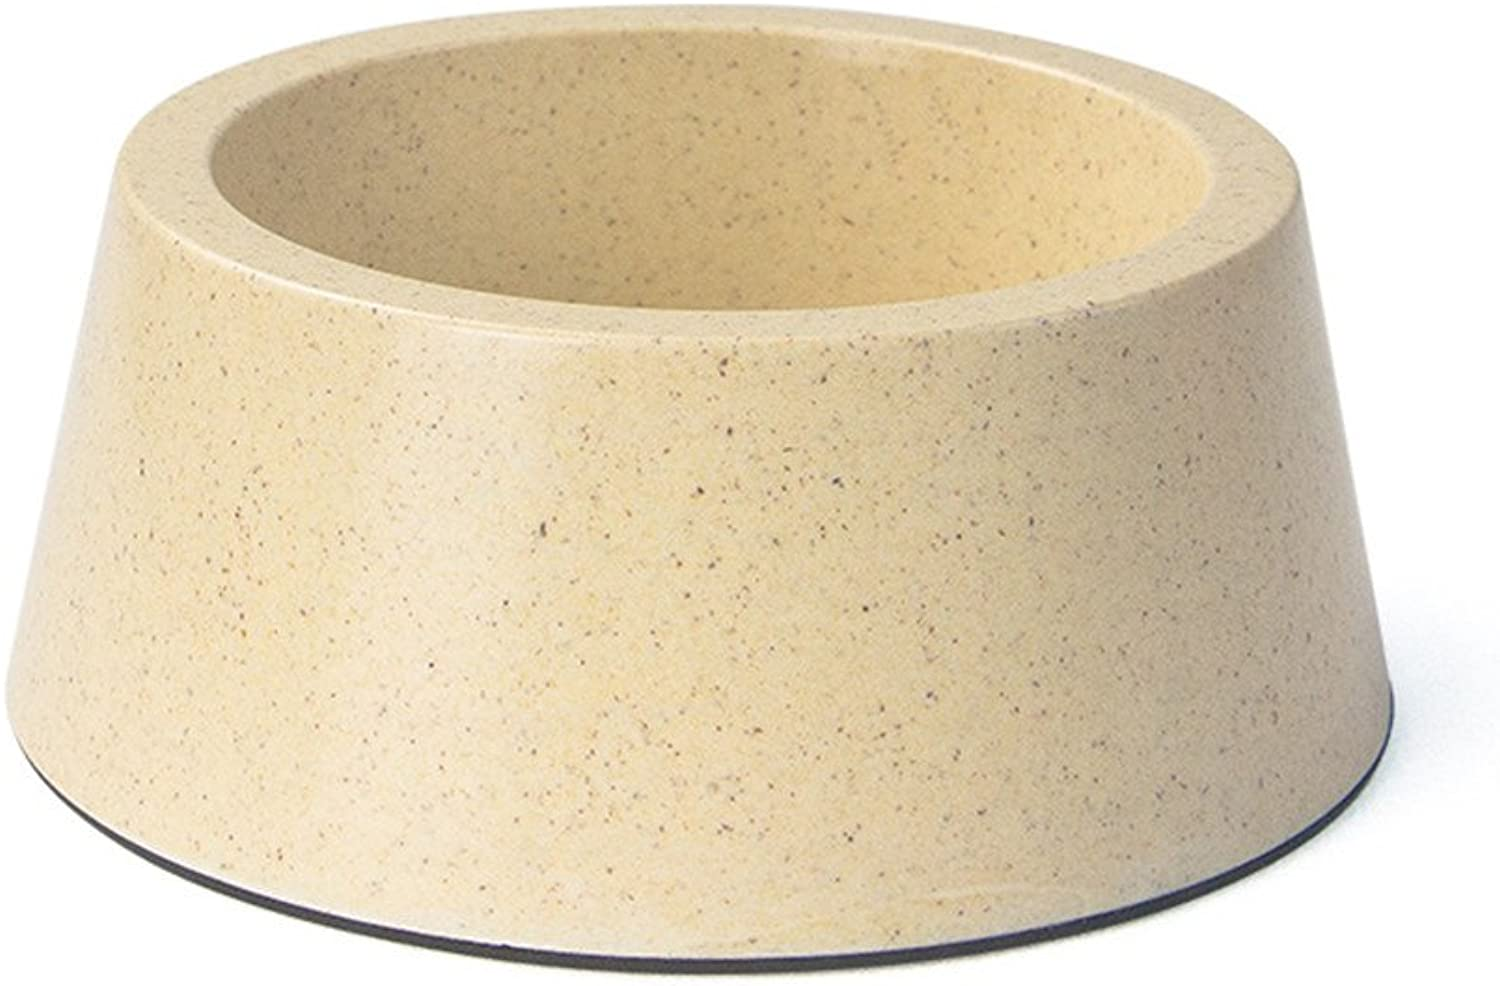 ForeverYou Dog Bowl Dog Pot cat Bowl Double Bowl Small pet Stainless Steel Drinking Water Bowl, Beige